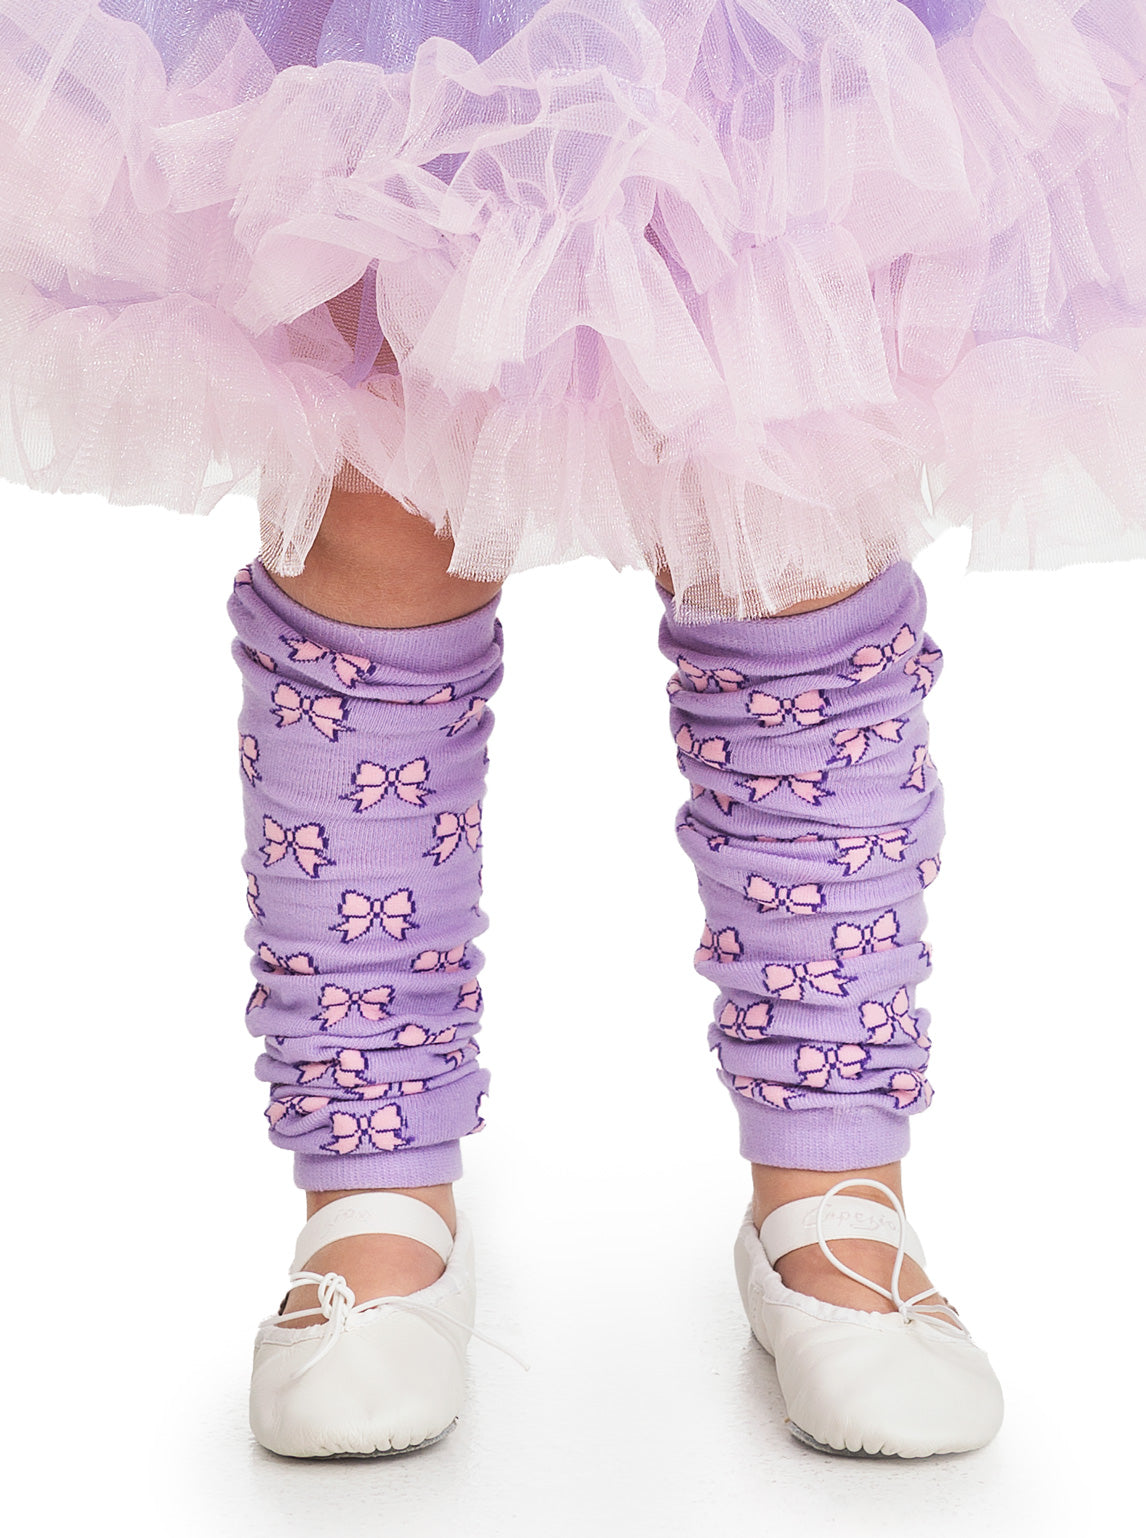 It's irresistible to twirl, jump and dance in this fun, fluffy lilac and pink tutu. Three layers of shimmery lilac fabric are accented by large pink ruffled edges. The soft, elastic waist is detailed with an adorable matching pink ribbon.